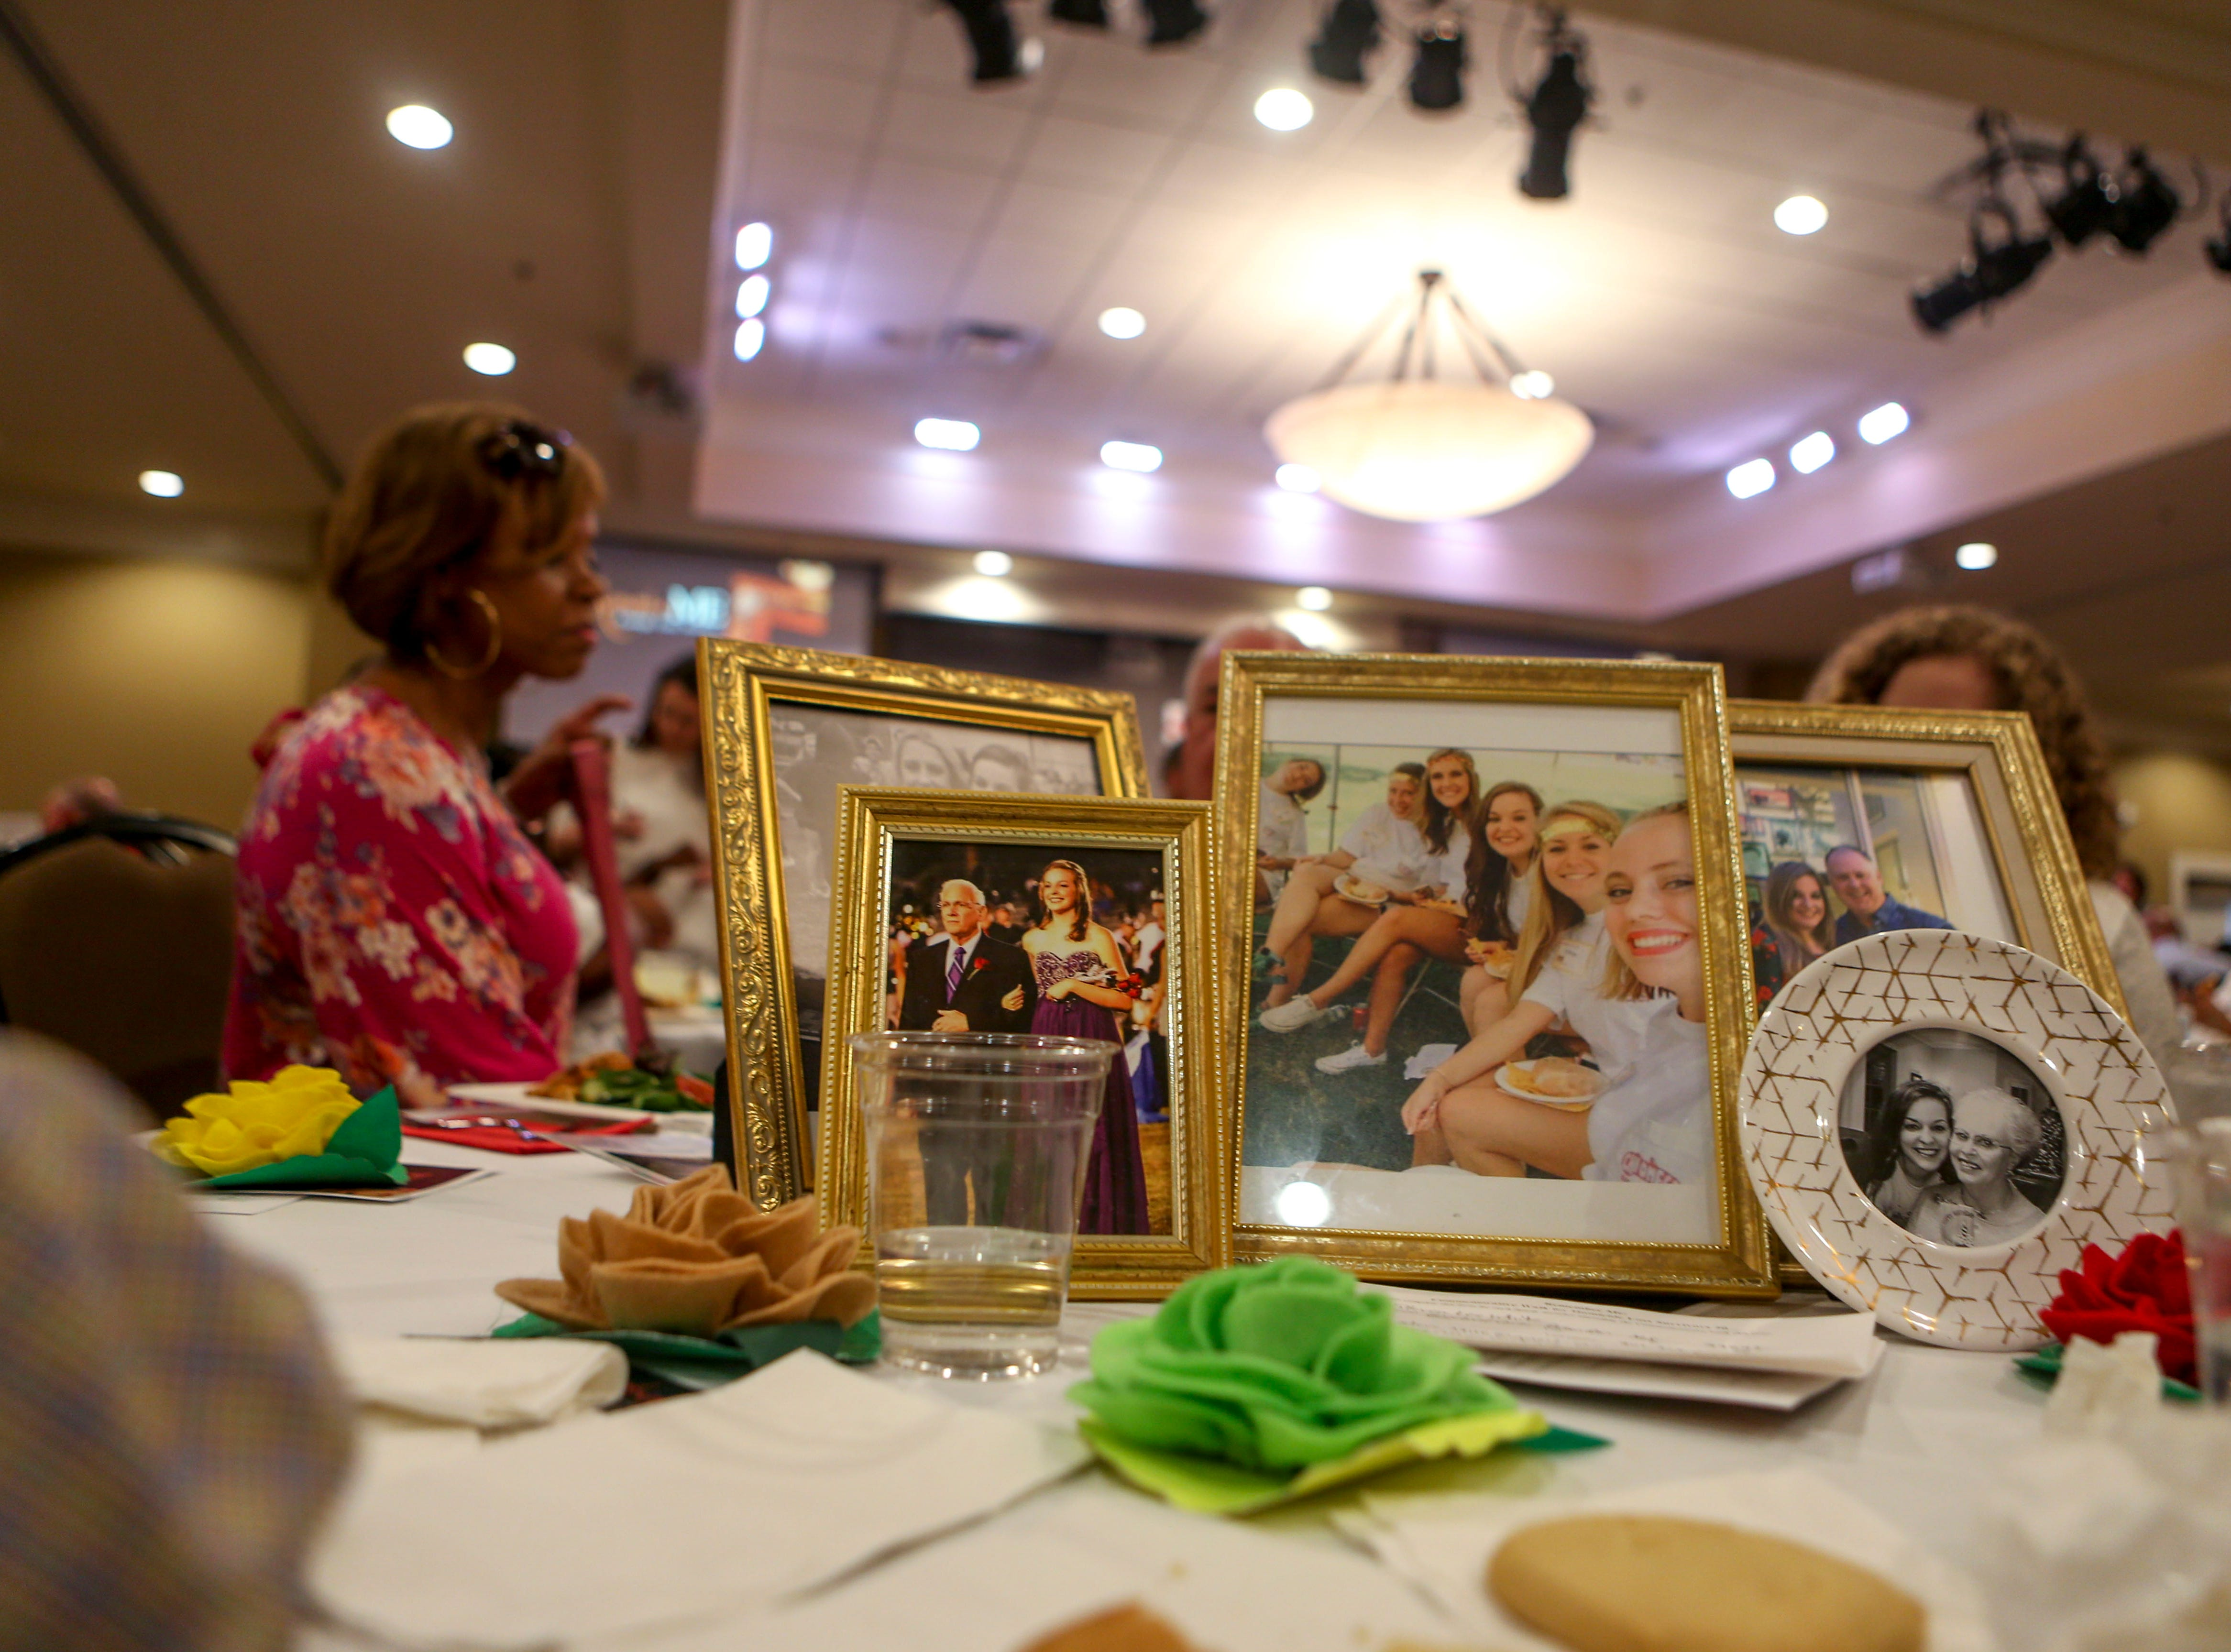 Photos to memorialize a victim of suicide are placed at the center of a table during the annual Remember Me Walk hosted at Union University in Jackson, Tenn., on Monday, Oct. 1, 2018.